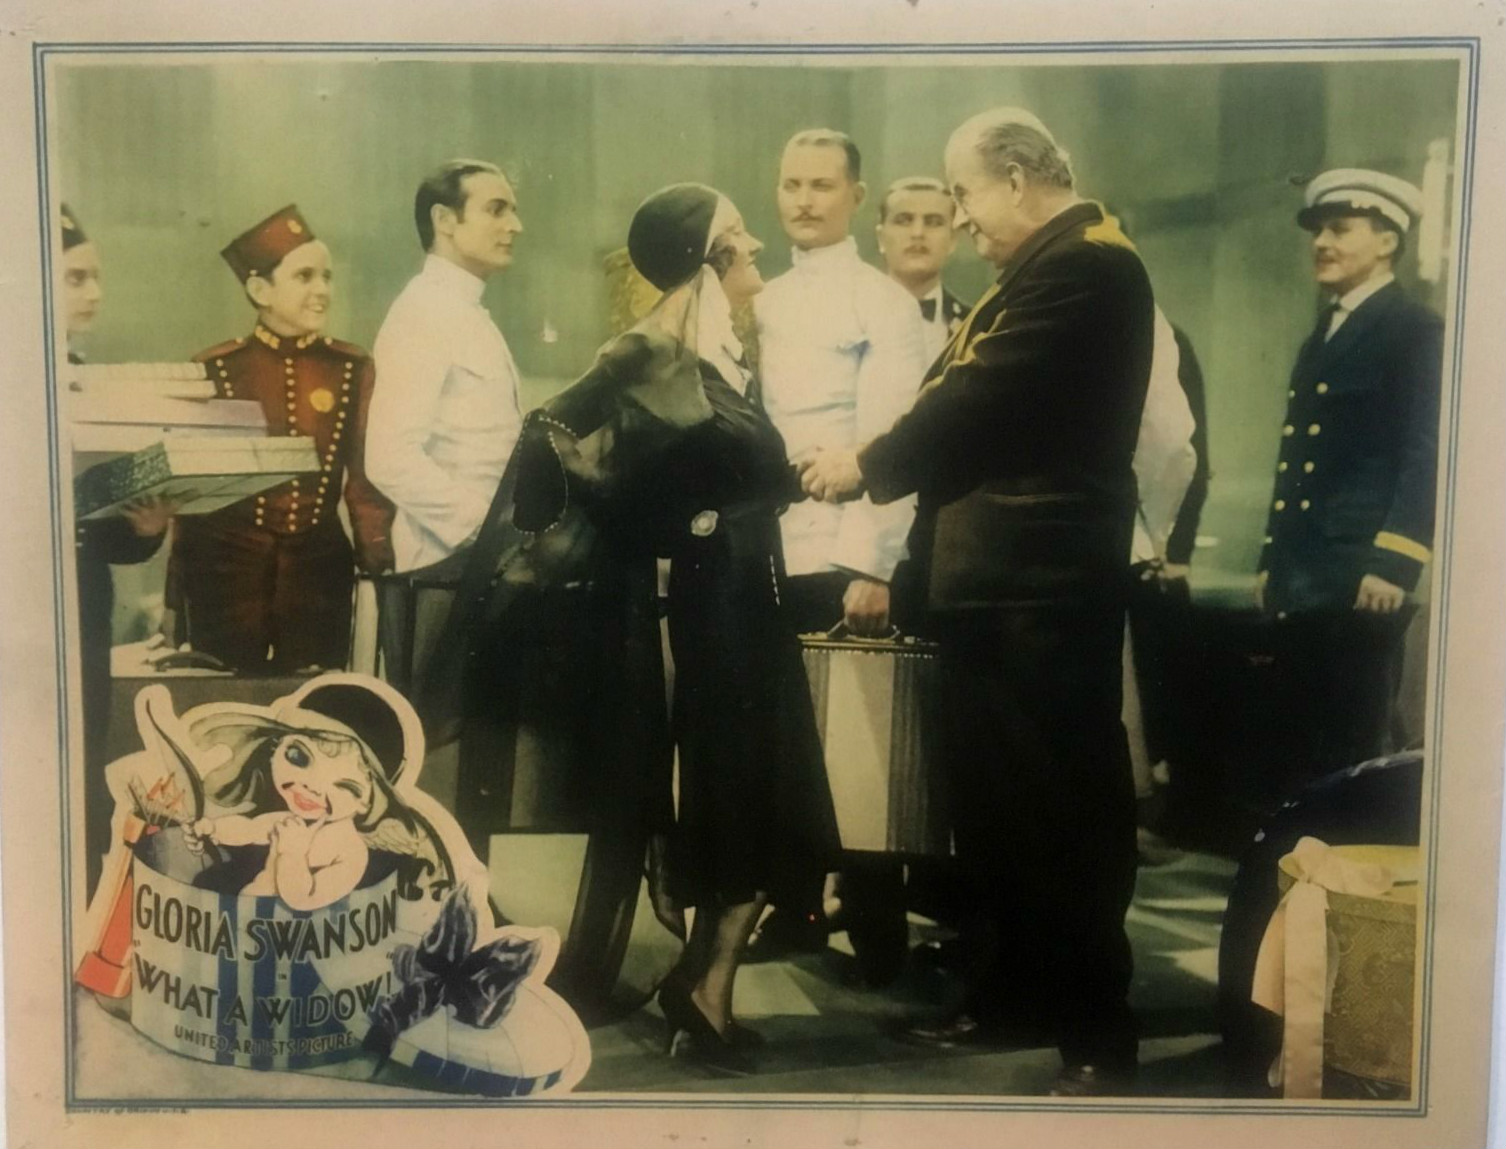 What_a_Widow_lobby_card_4.jpg